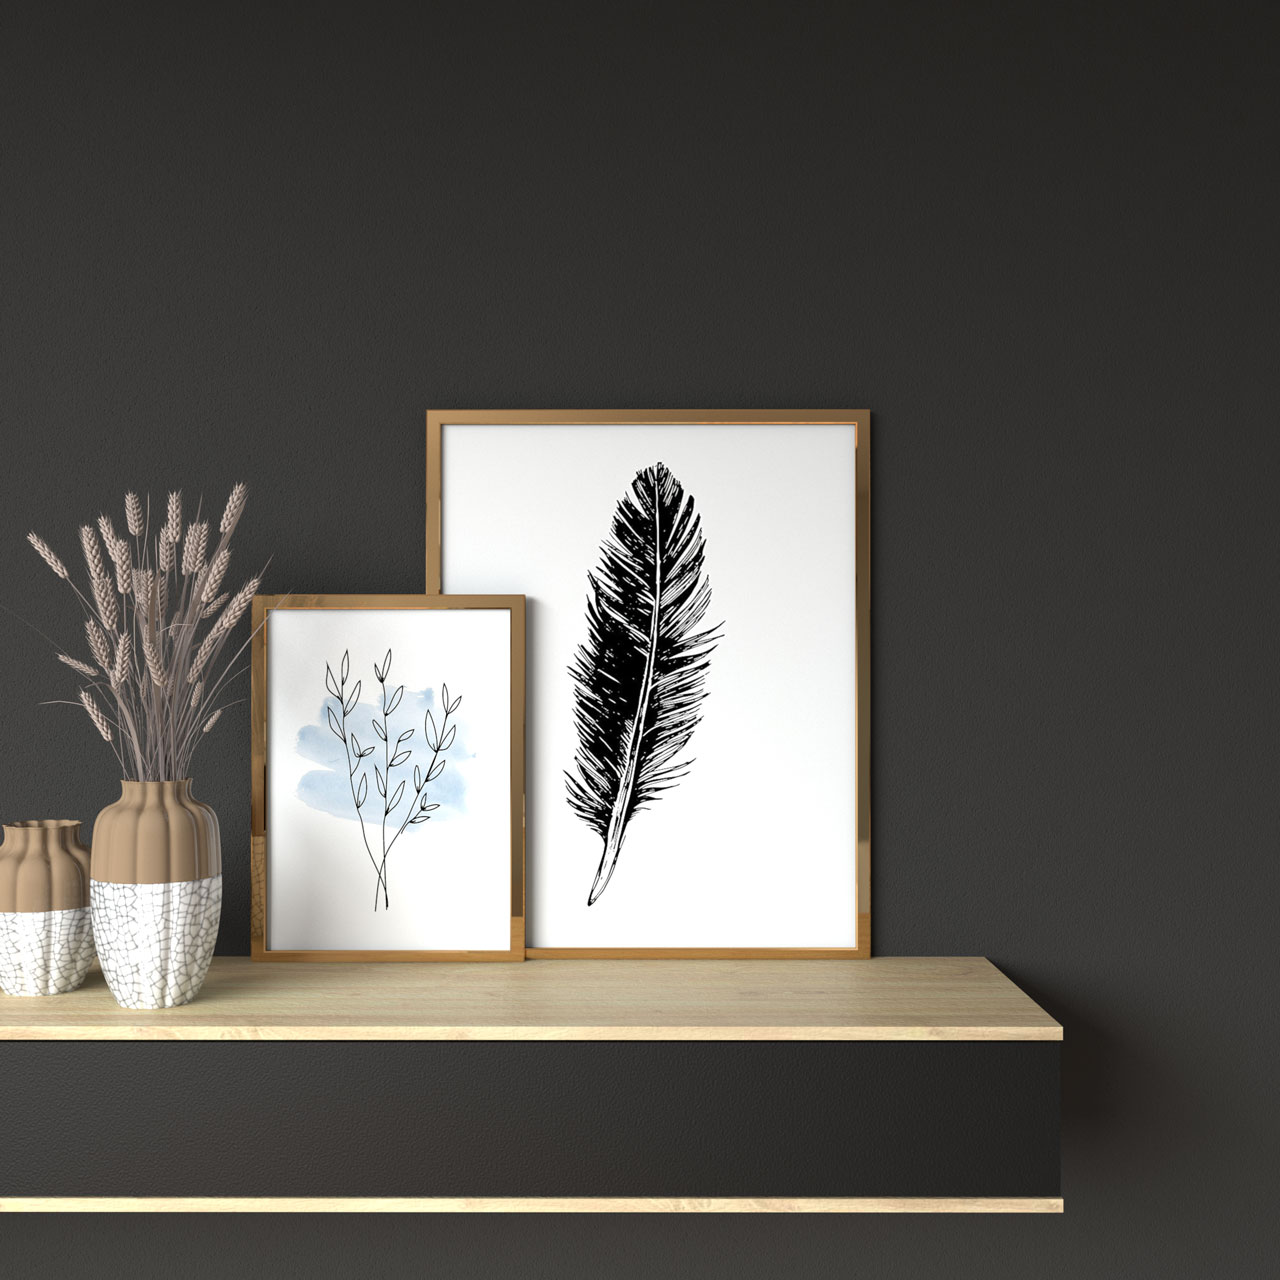 best wall color for picture frame: charcoal